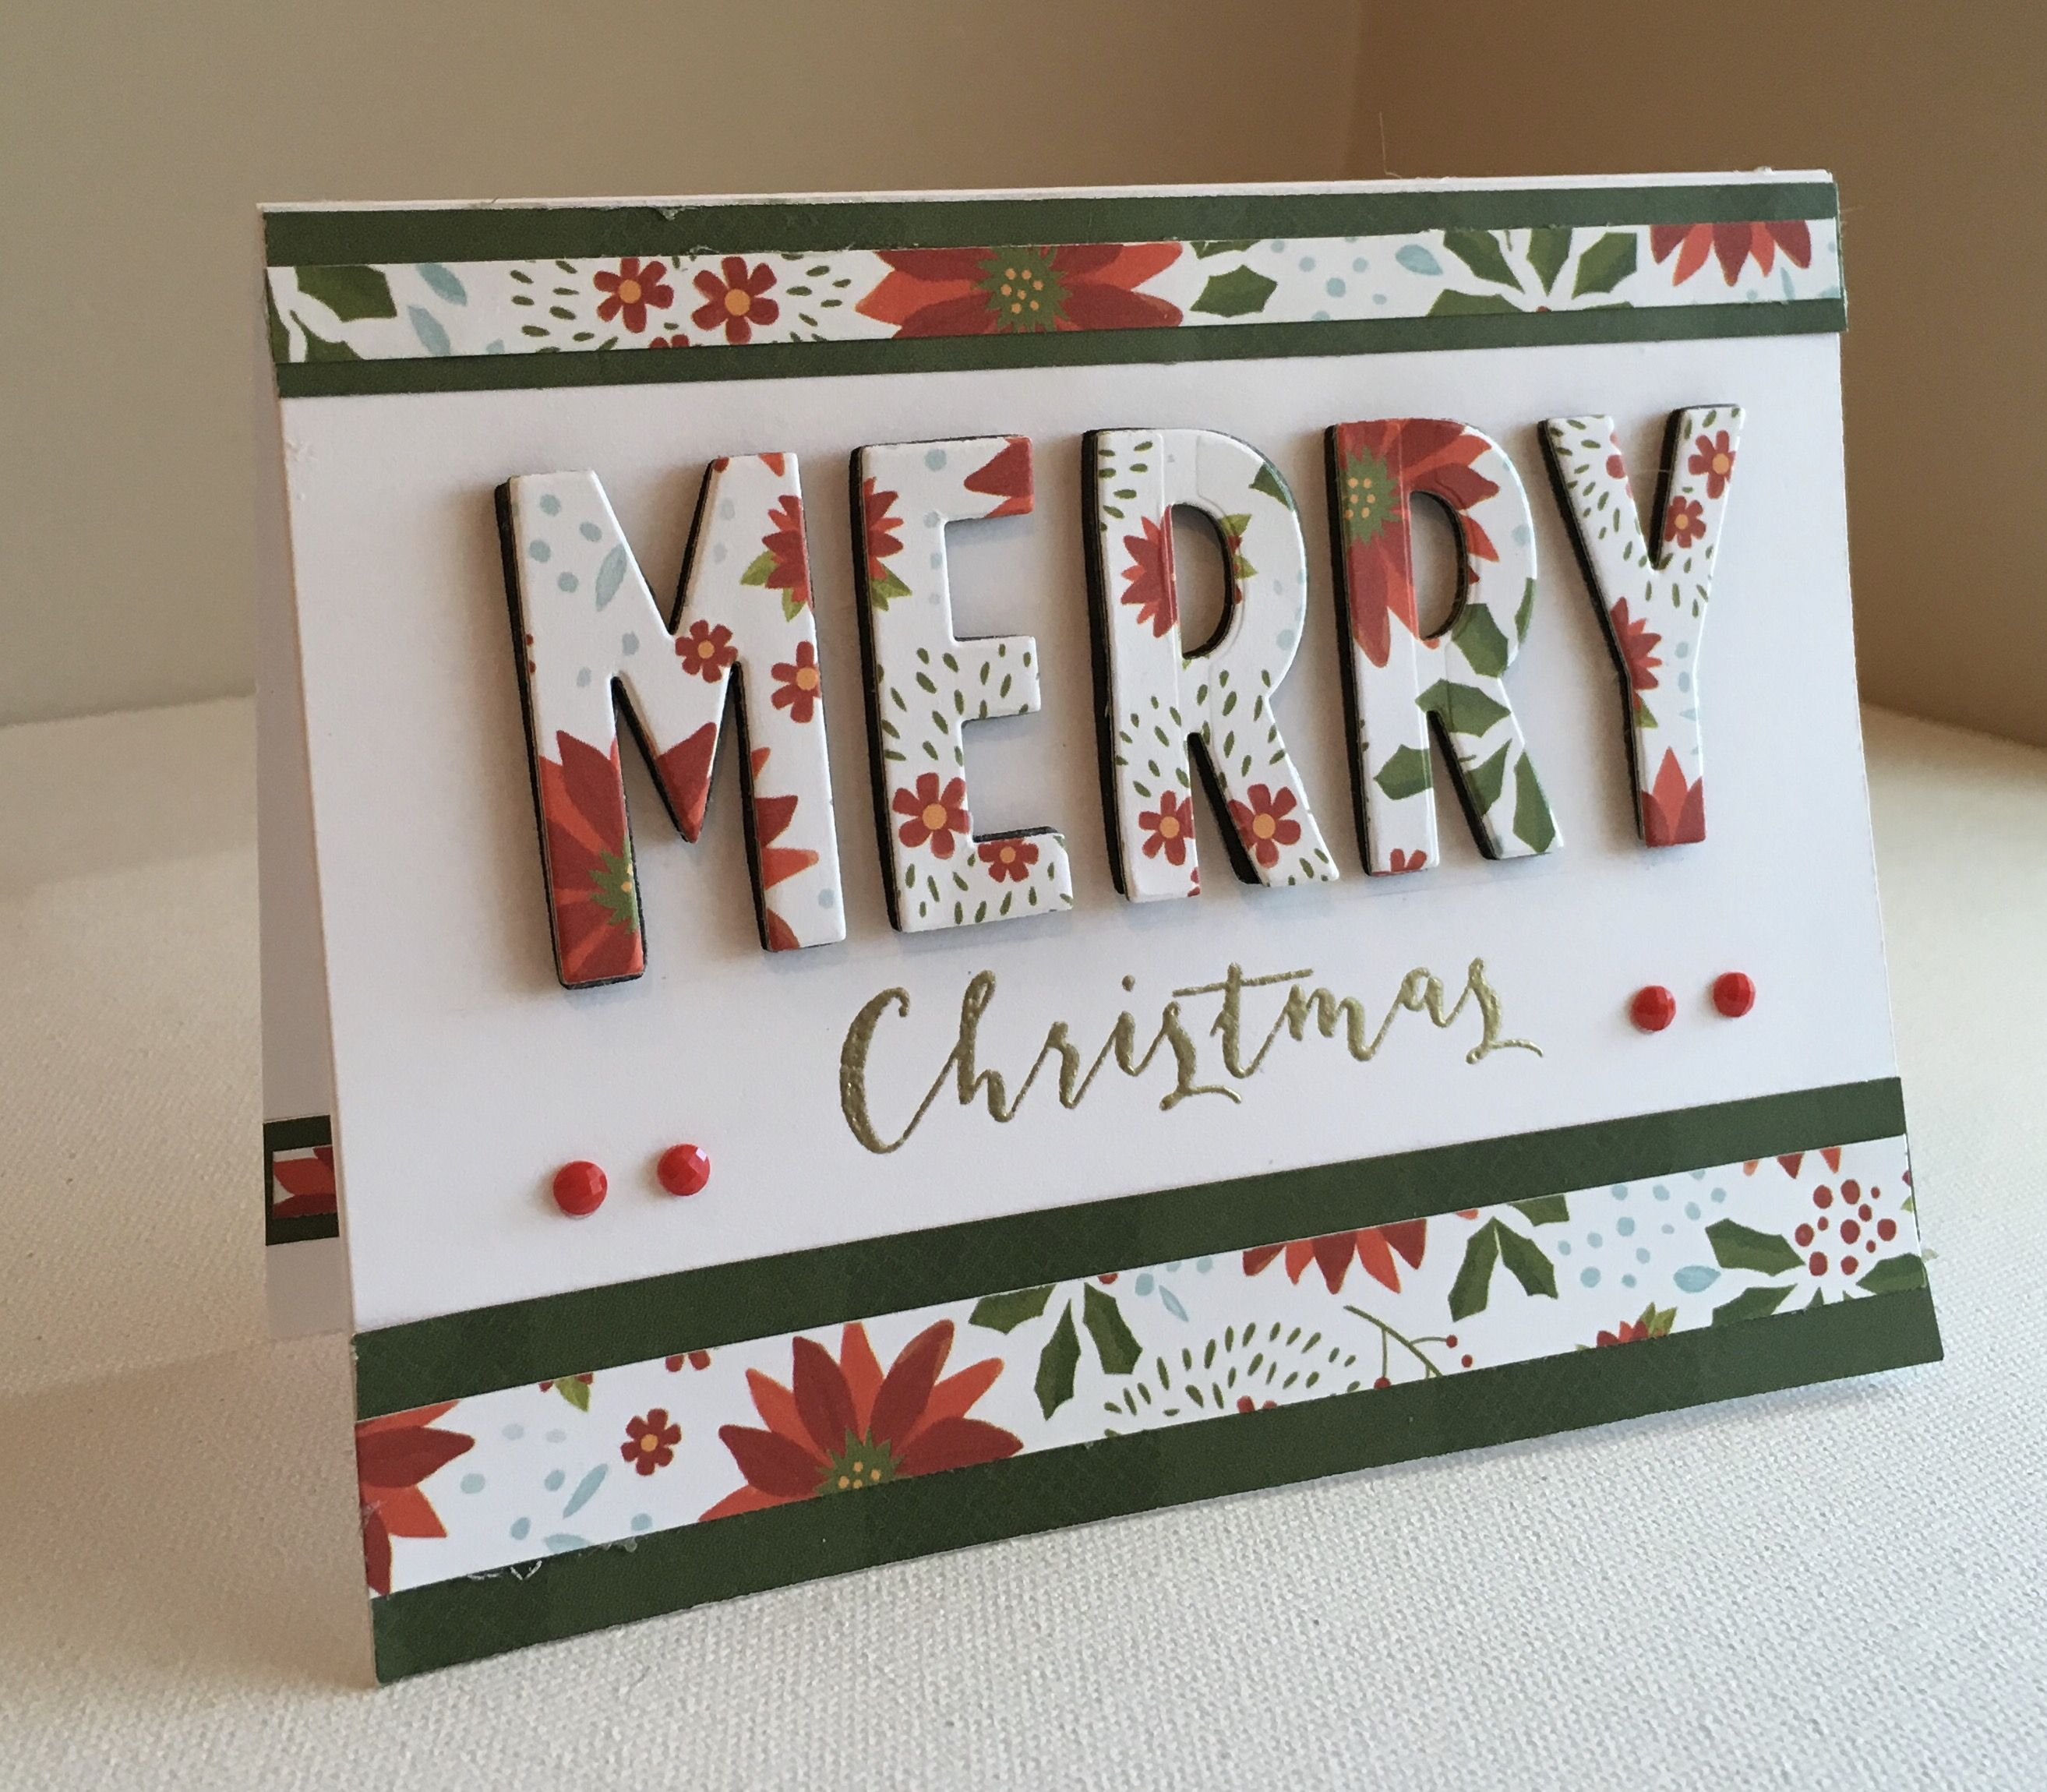 Eclipse Card Eclipse Card Pinterest Christmas Cards Christmas